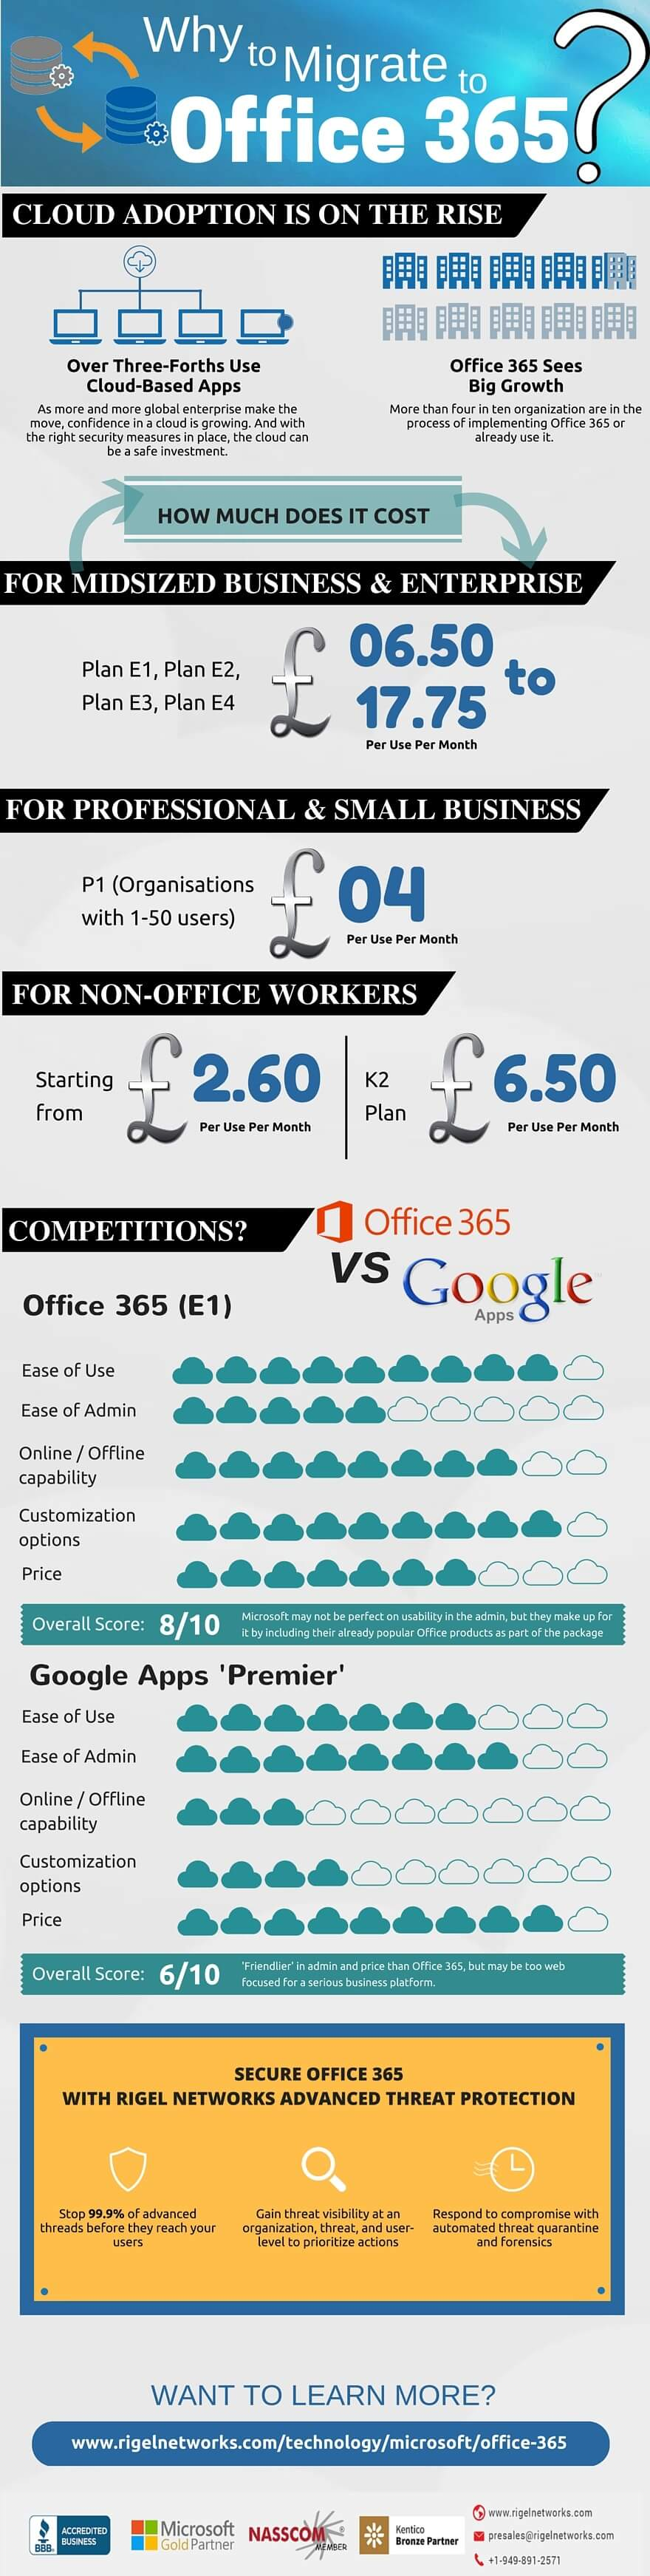 why-to-migrate-to-office-365